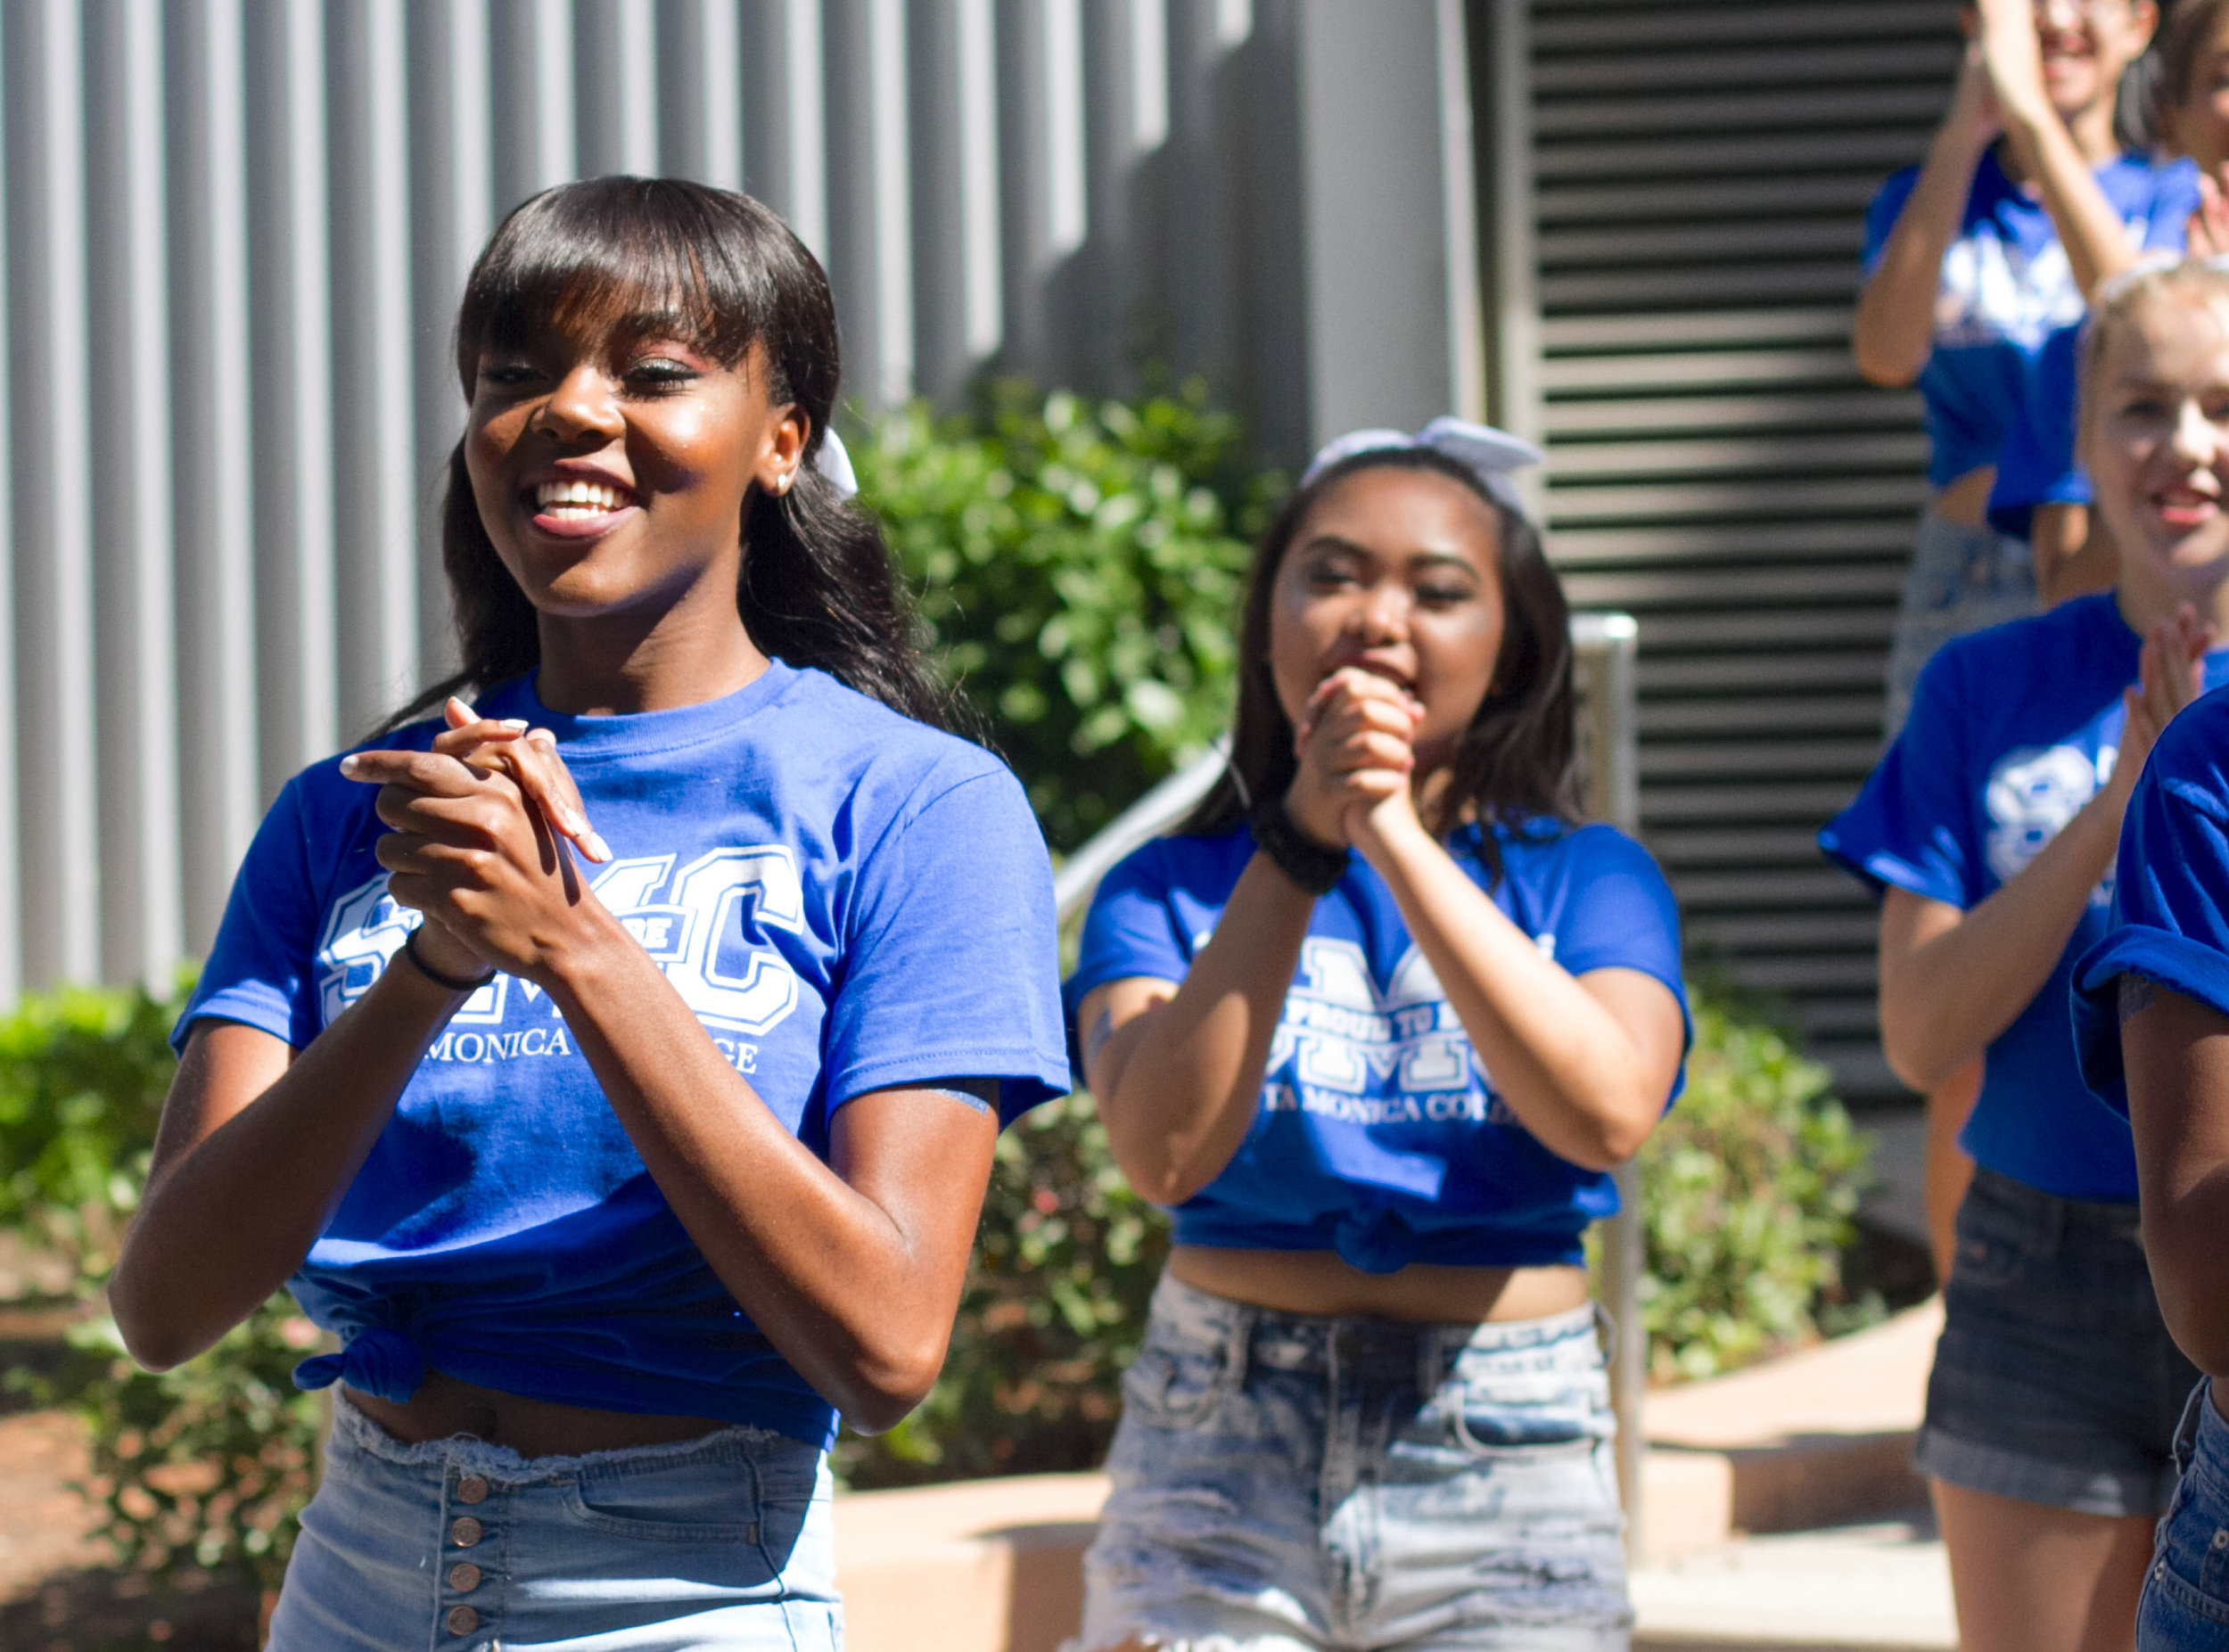 Cheerleader Winnie Marcelin performing with the SMC Cheer Club at the Club Awareness Day at Santa Monica College in Santa Monica, Calif., September 28, 2017. (Photo By: Rips Avetisyan/Corsair Staff)